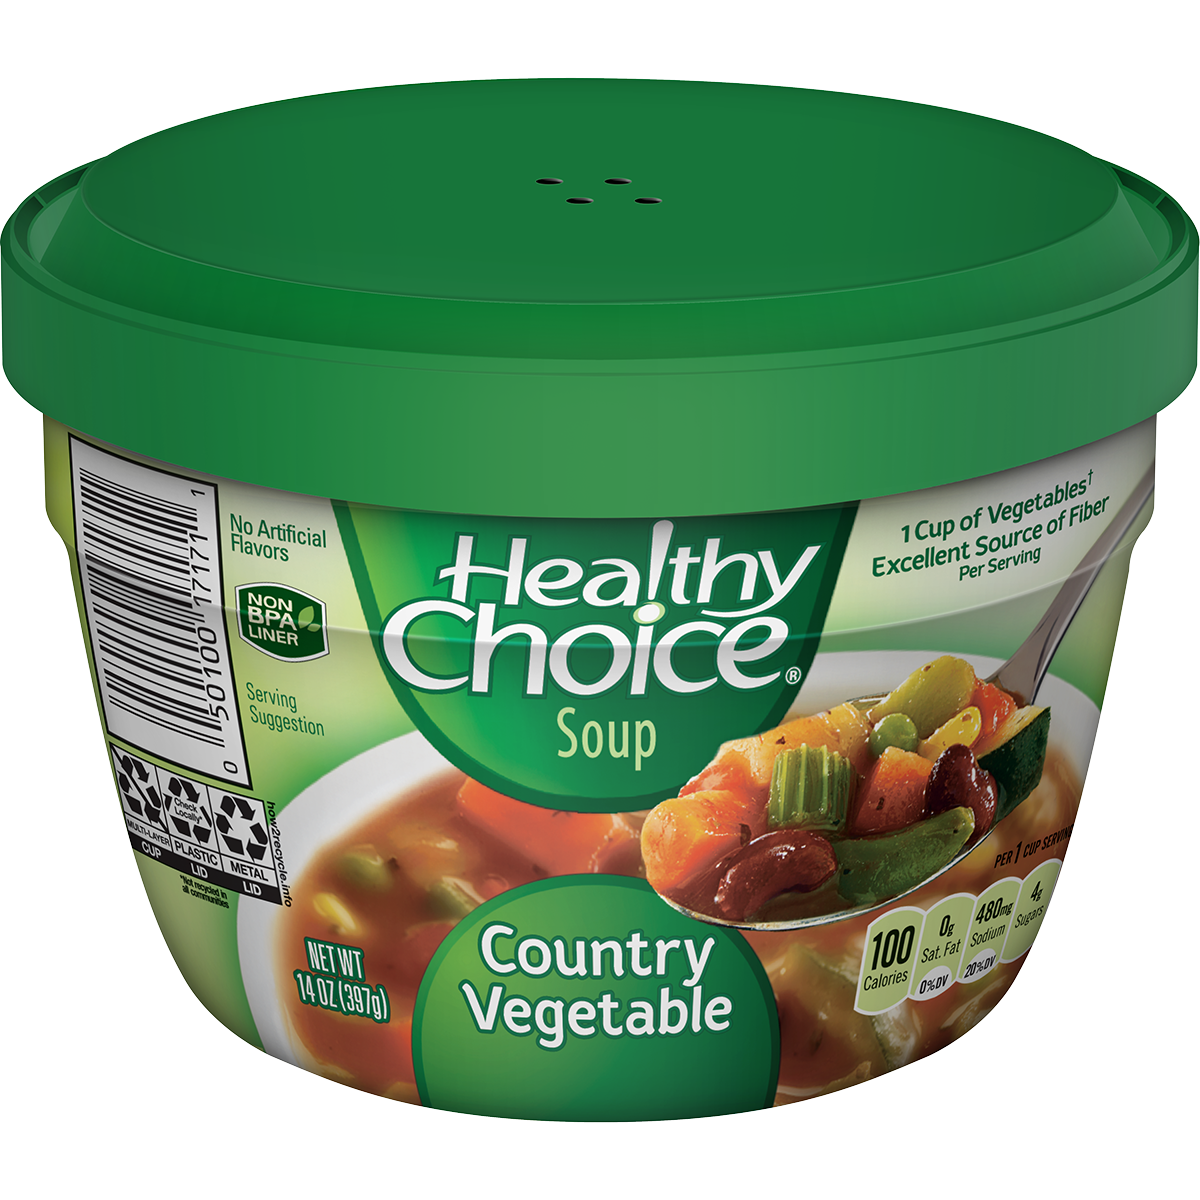 HEALTHY CHOICE Microwaveable Vegetable Soup